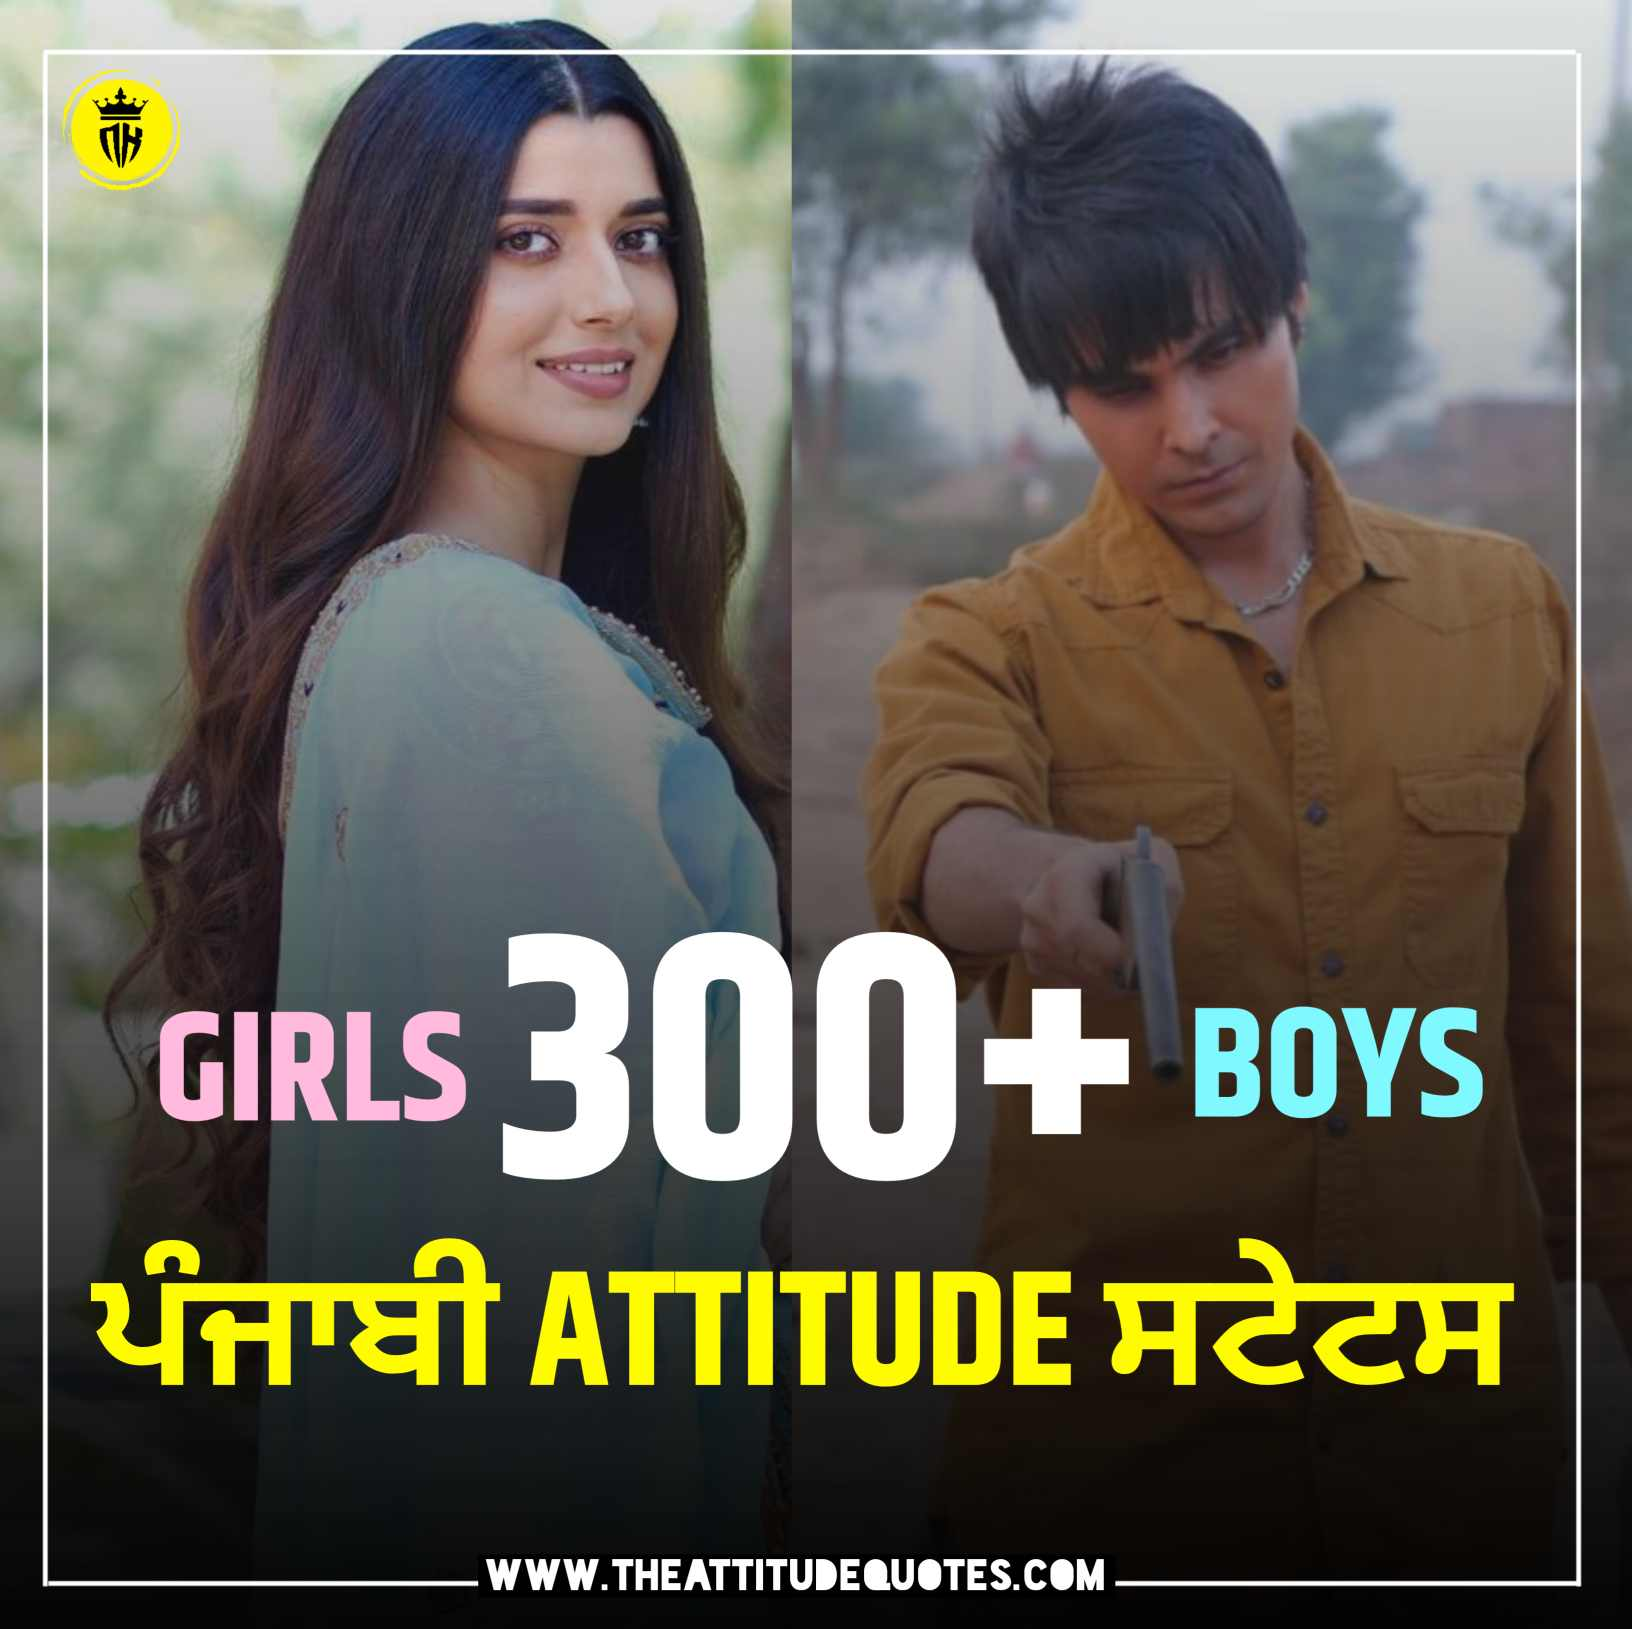 Attitude Status In Punjabi 2021, Punjabi Attitude, Punjabi Ghaint Status, Punjabi Status For Girls 2021, Punjabi Status For Boys 2021, Personality Status In Punjabi, Attitude Quotes In Punjabi, Punjabi Attitude Status For Boys 2021, Attitude Status For Girls In Punjabi, Attitude Status In Punjabi For Girls, punjabi kudi attitude status 2021, block attitude punjabi status, yaari status punjabi, Punjabi Attitude Status In English 2021, Ghaint Status, Status For Fb In Punjabi Attitude, Attitude Status For Boys In Punjabi, Punjabi Status Attitude Boy 2021, Punjabi Attitude Status In Hindi, Punjabi Status Attitude Boy 2021, Punjabi Status For Instagram, Desi Status Punjabi 2021, Attitude Lines In Punjabi, Boys Attitude Status In Punjabi, Attitude Quotes For Girls In Punjabi, Punjabi Yaari Status 2021, Badmashi Status Punjabi, Status Attitude Punjabi, Punjabi Status 2019 Attitude, Best Attitude Status In Punjabi 2021, Fb Status Punjabi Attitude, New Punjabi Attitude Status, Punjabi Status Instagram, Attitude Punjabi Quotes 2021, Status In Punjabi Attitude, Attitude Status In Punjabi For Boys, Punjabi Ghaint Status 2021, Punjabi Quotes Attitude, Kaim Sardari Status In Punjabi Language , Punjabi Badmashi Status 2021, New Punjabi Status Attitude, Quotes On Attitude In Punjabi , Punjabi Status Badmashi, Punjabi Instagram Bio 2021, Bio For Instagram For Boy Attitude In Punjabi, Attitude Status For Boys Punjabi, Punjabi Status Attitude Girl 2021, Punjabi Status In Hindi Attitude, Yaari Status Punjabi Attitude, Sardar Attitude Status In Punjabi 2021